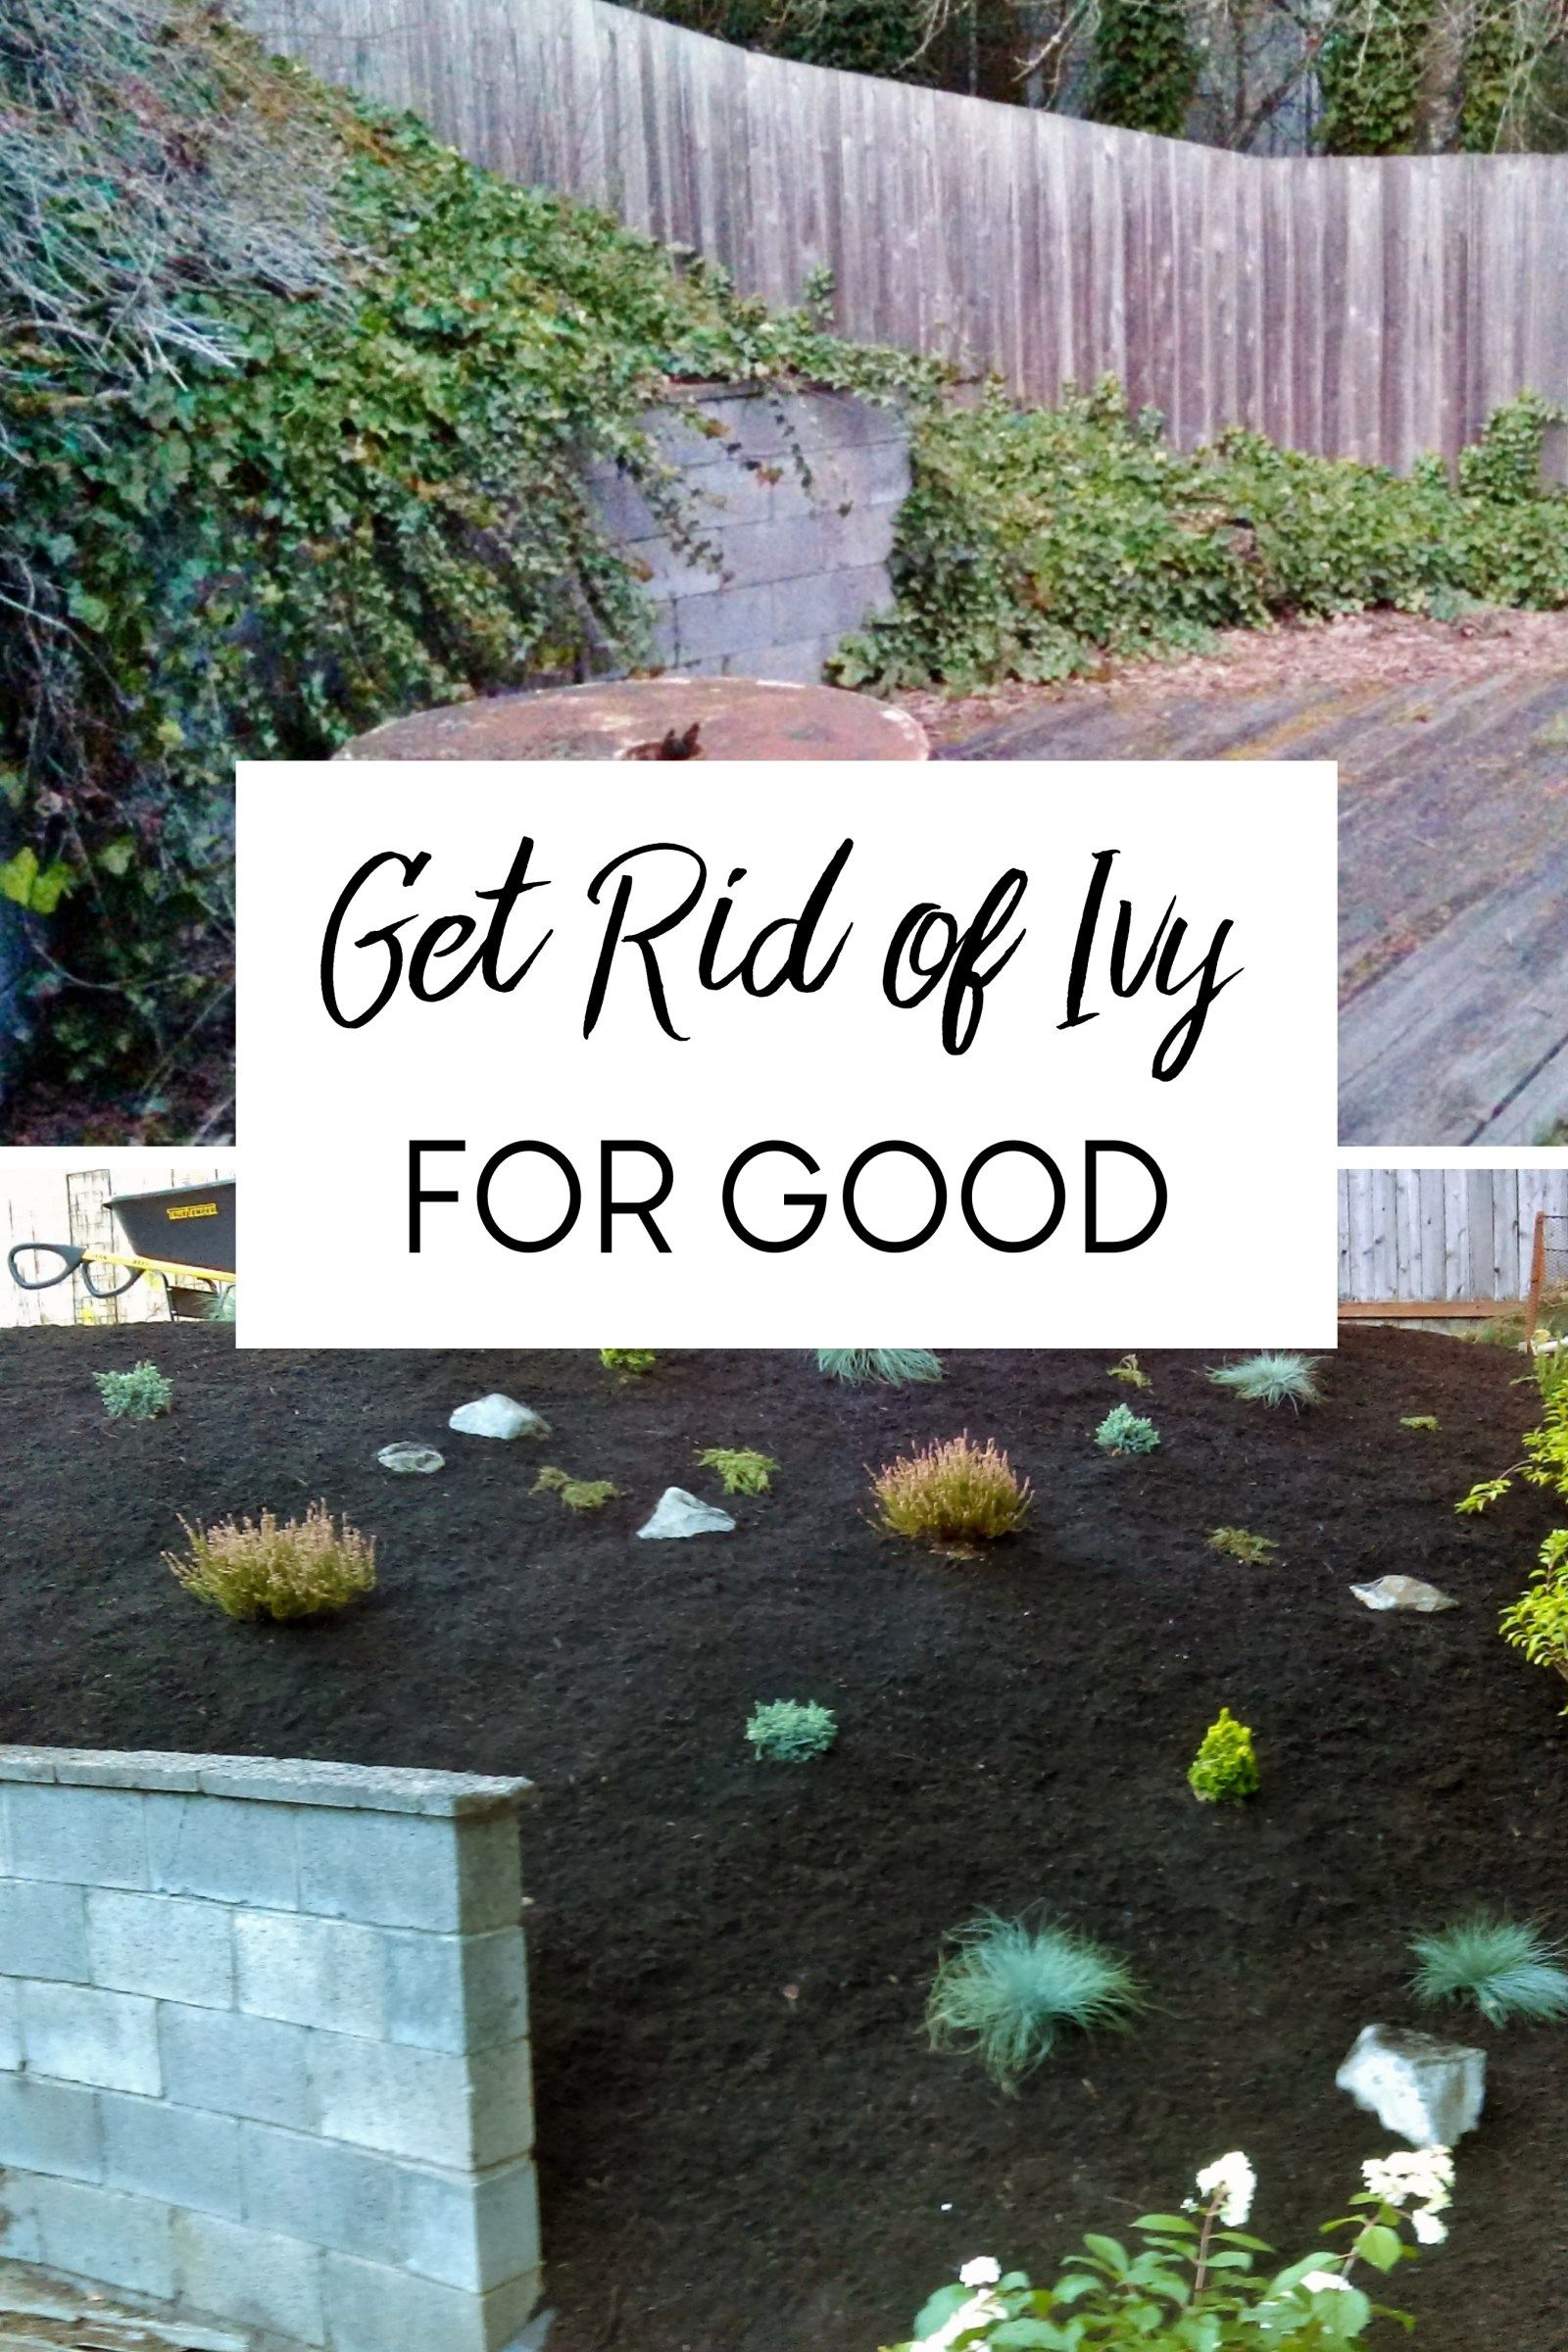 How To Get Rid Of Ivy Roots In Ground